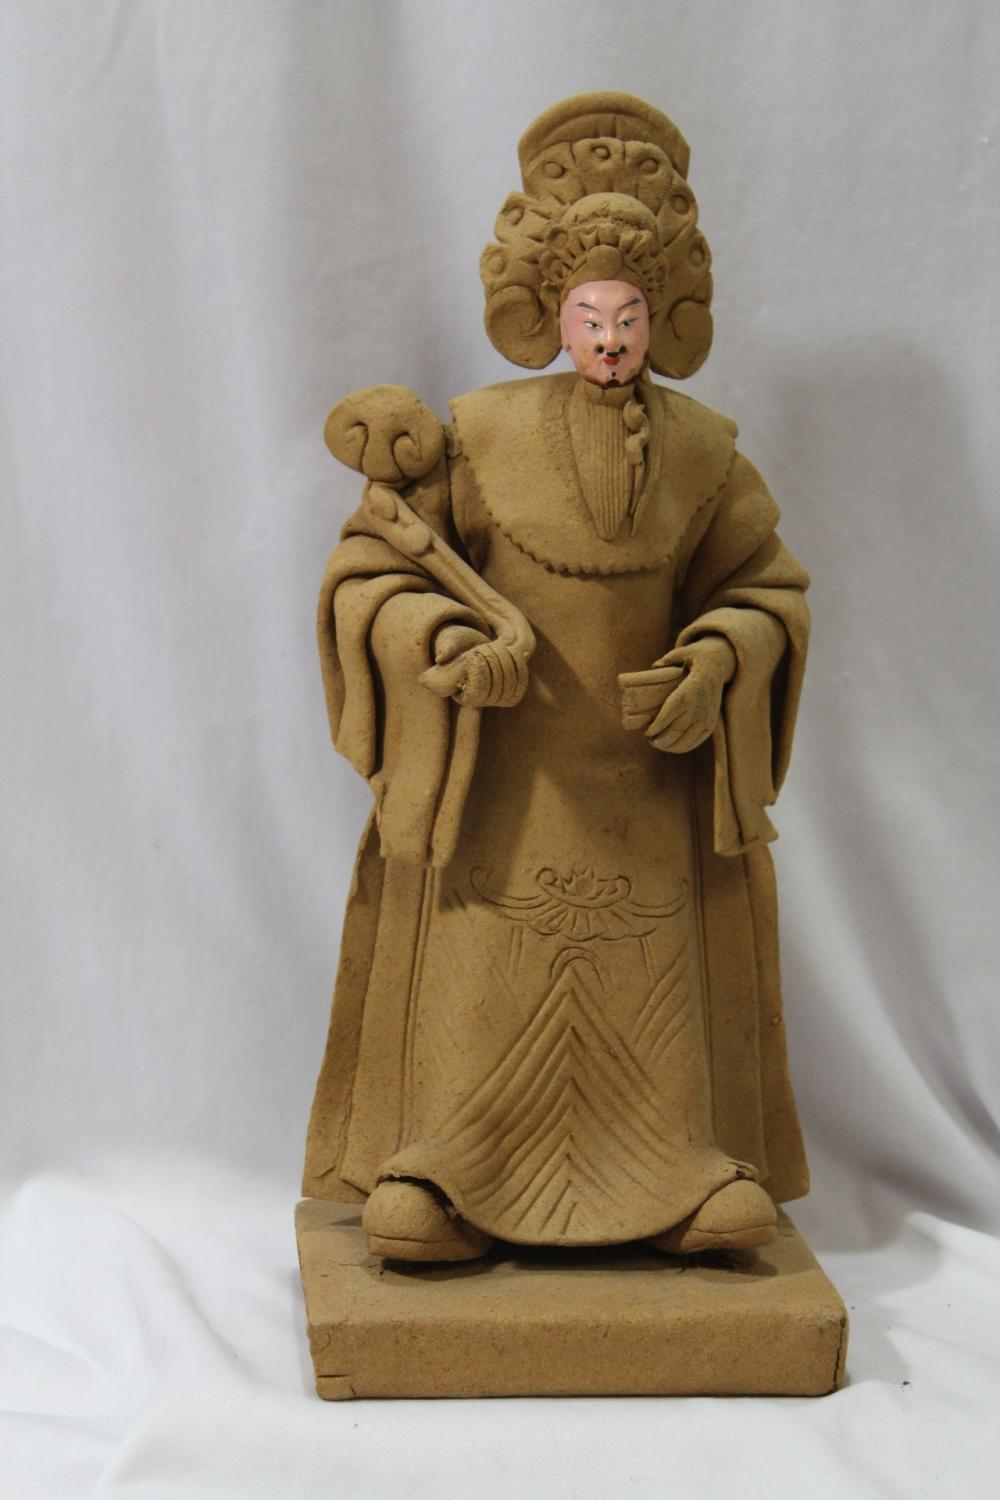 A Vintage Chinese Papermache Doll